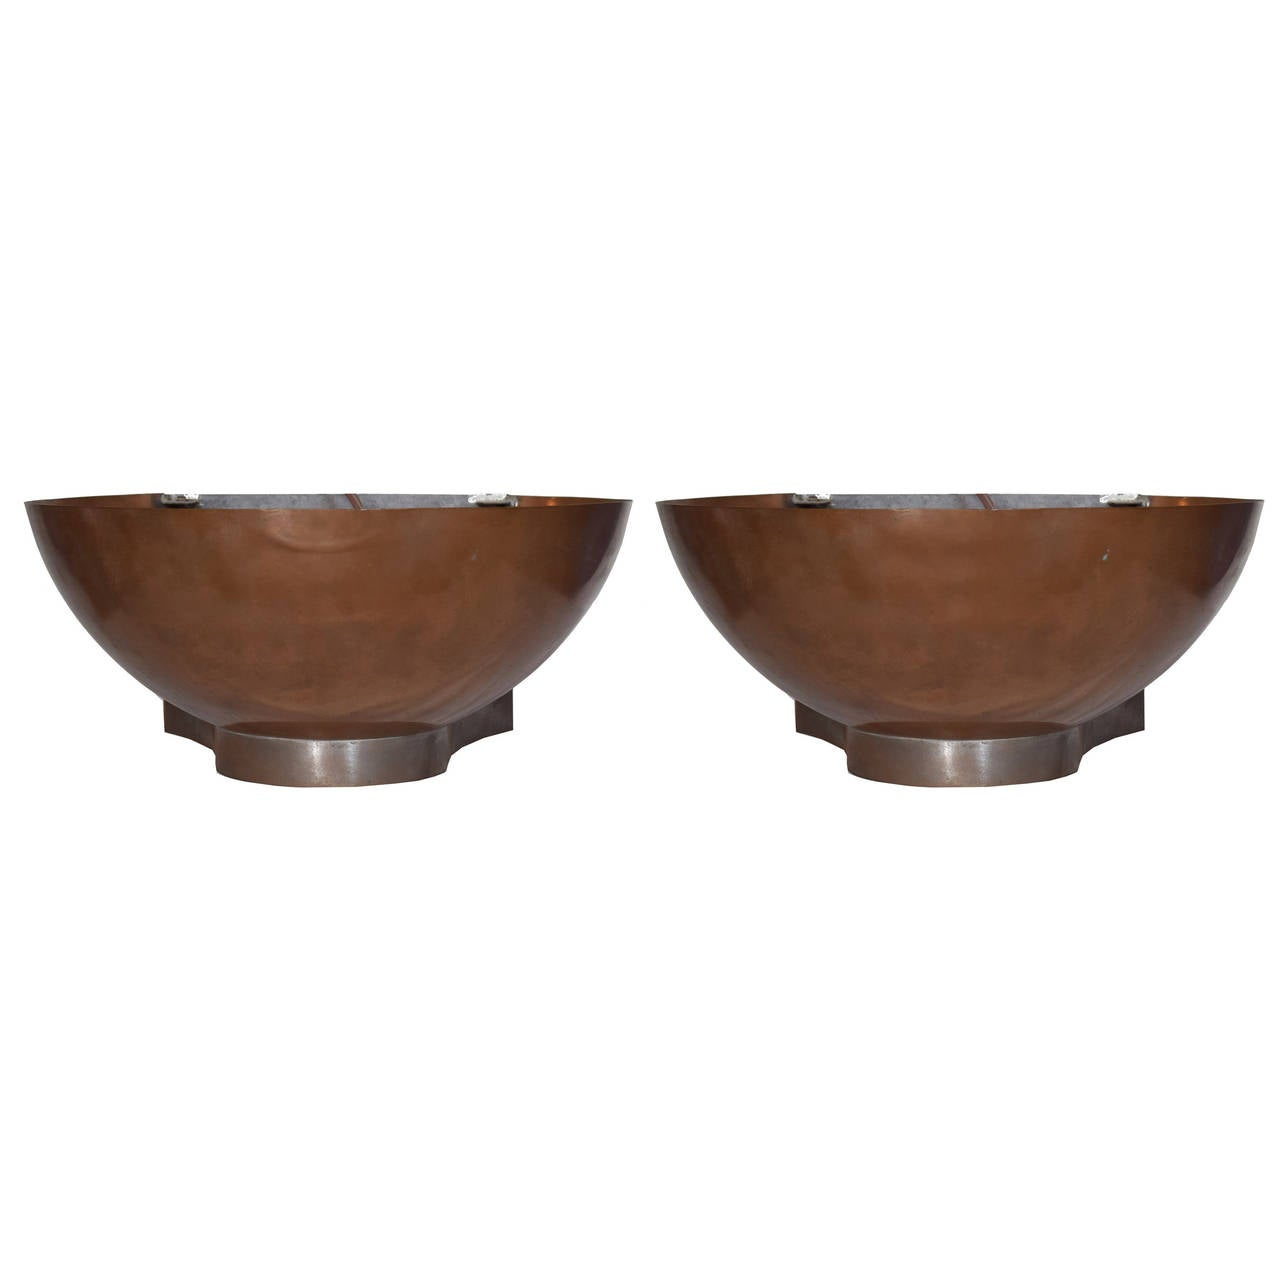 Wall Sconces Copper : Pair of Copper and Iron Wall Sconces For Sale at 1stdibs